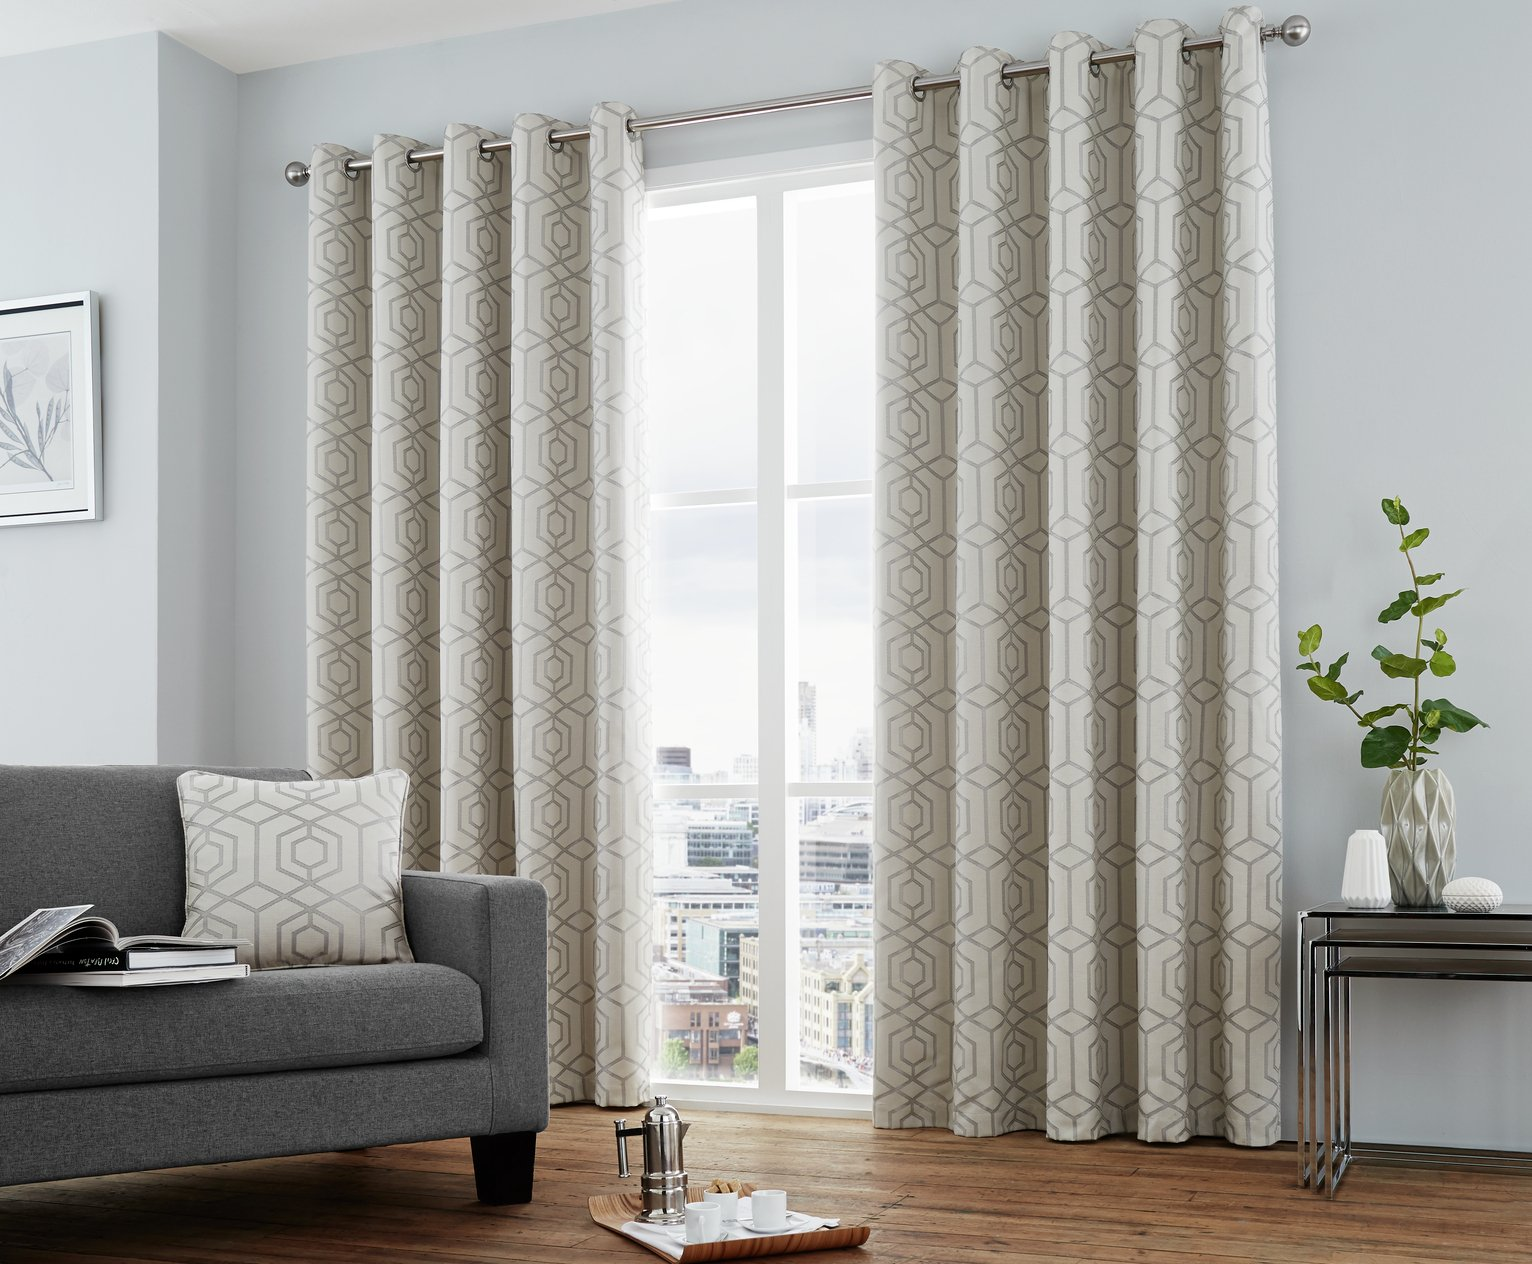 Image of Curtina Camberwell Eyelet Curtains - 168x229cm - Silver